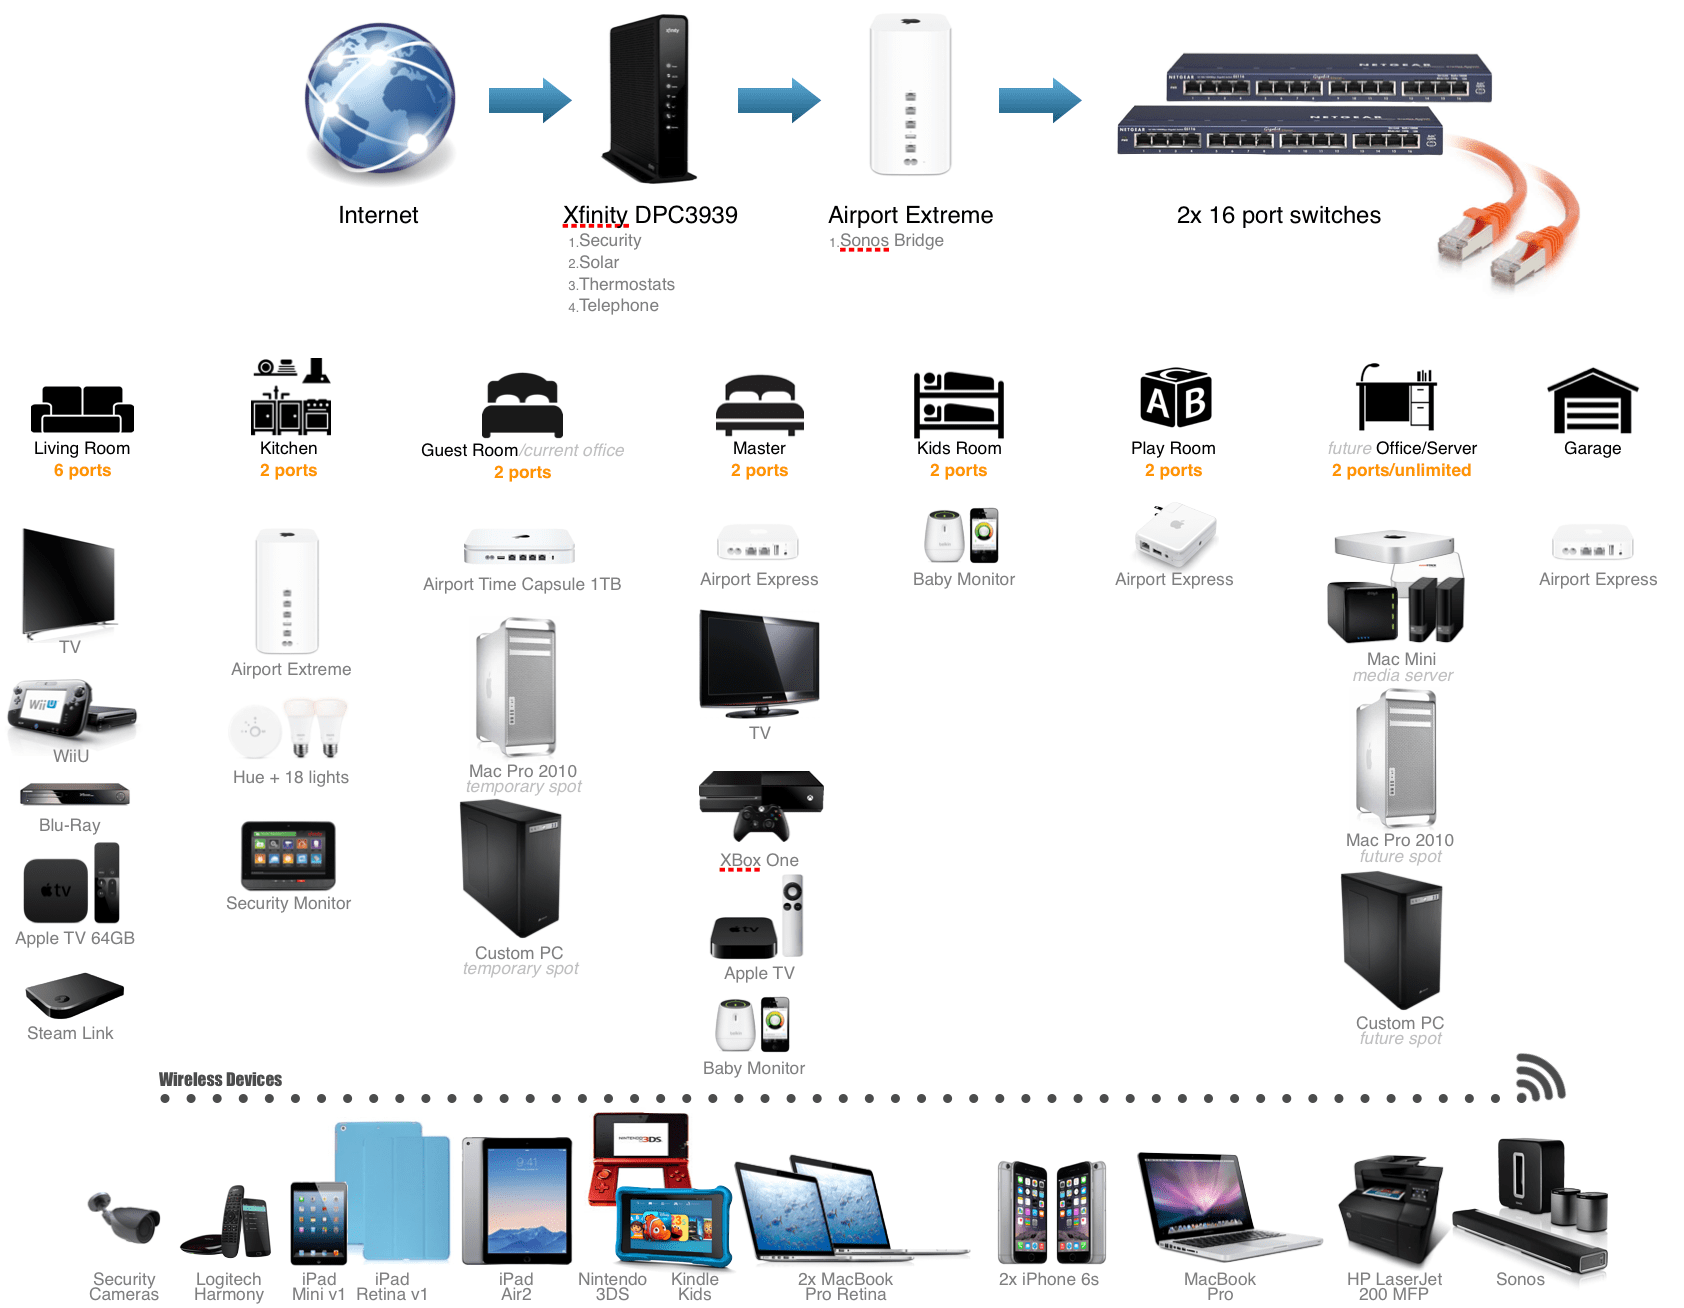 apple home network setup diagram how to draw a scale setting up our for cat6 ethernet